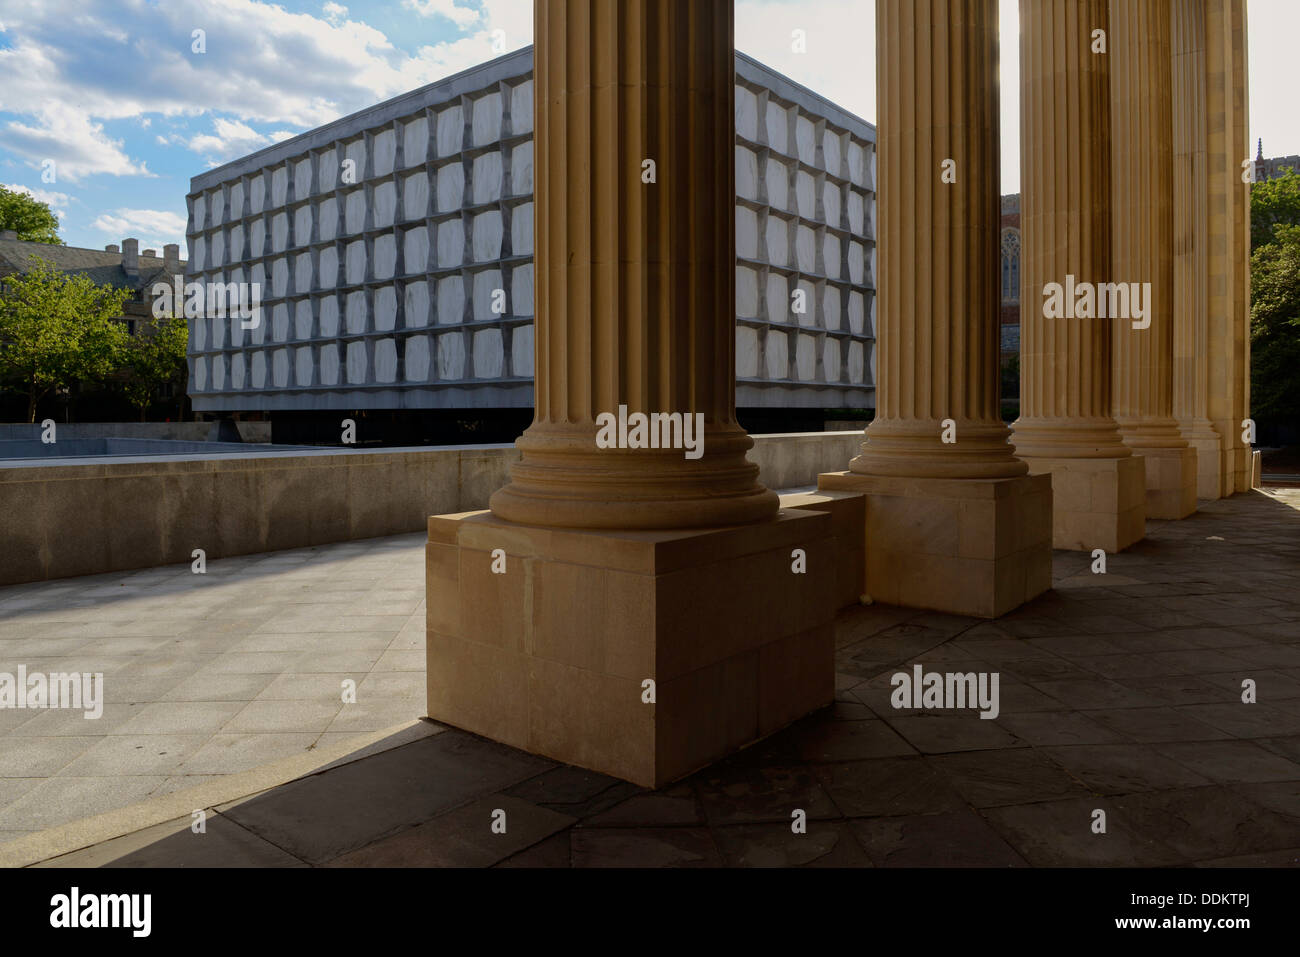 Beinecke rare book library, at Yale university, seen through stone columns of Yale Commons. - Stock Image